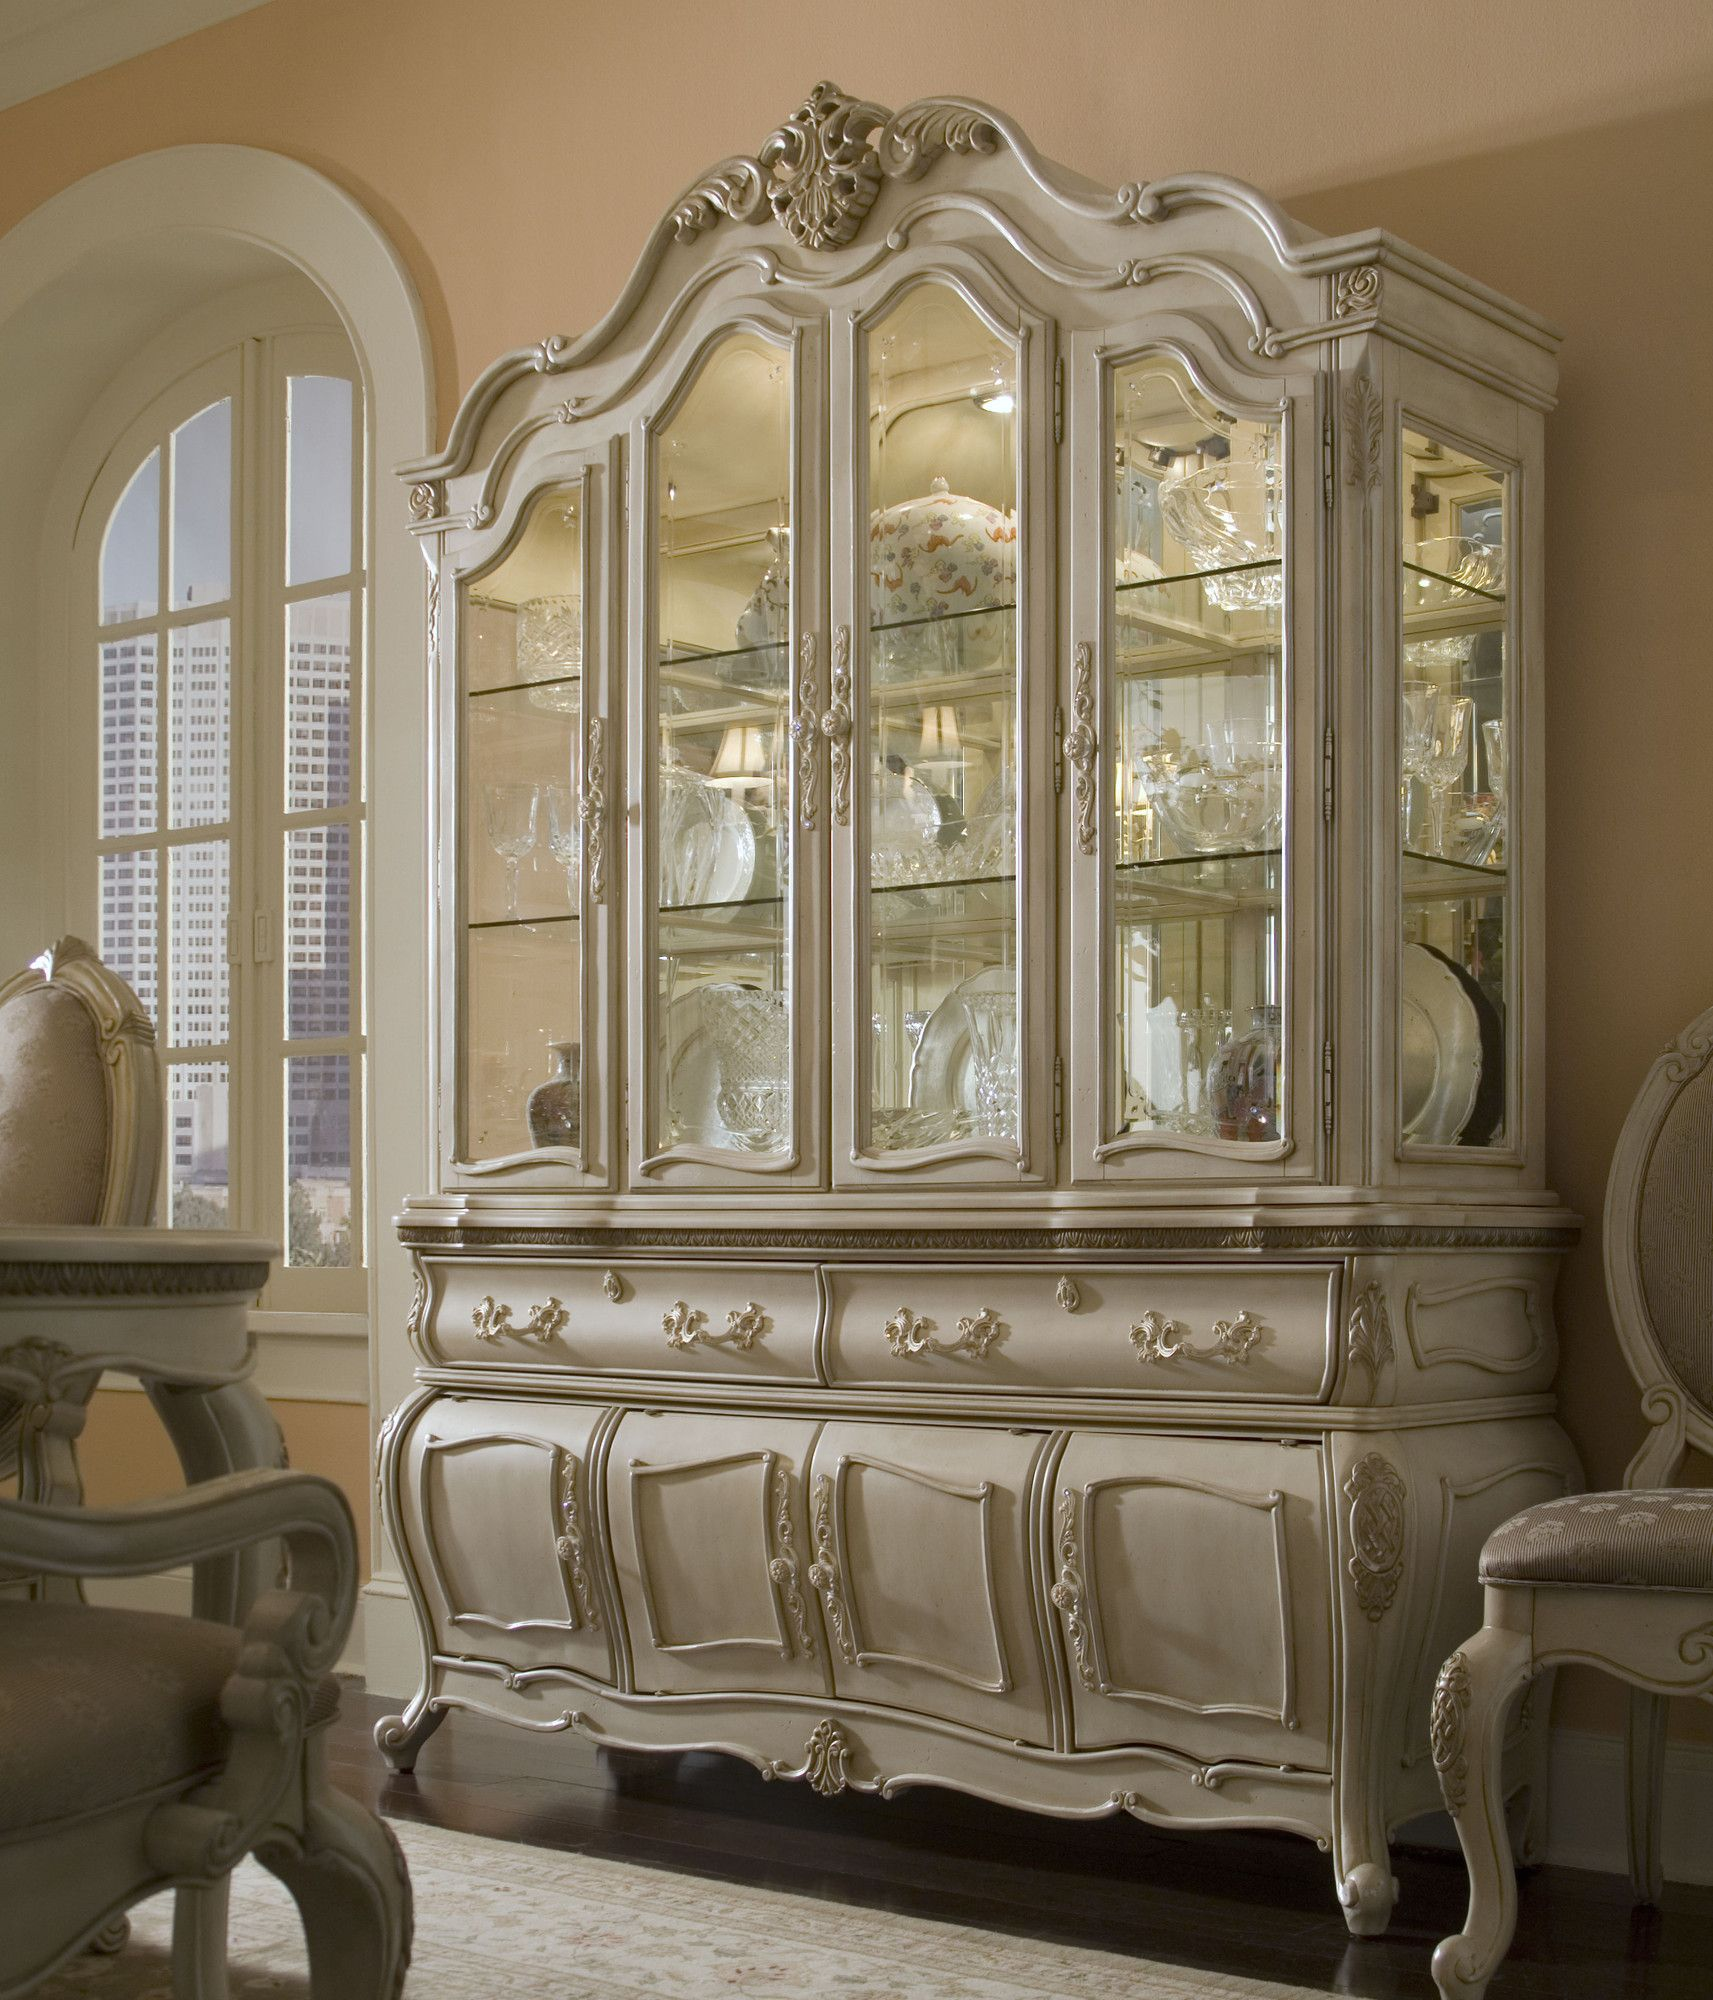 Lavelle Lighted China Cabinet | China cabinet, Furniture ...